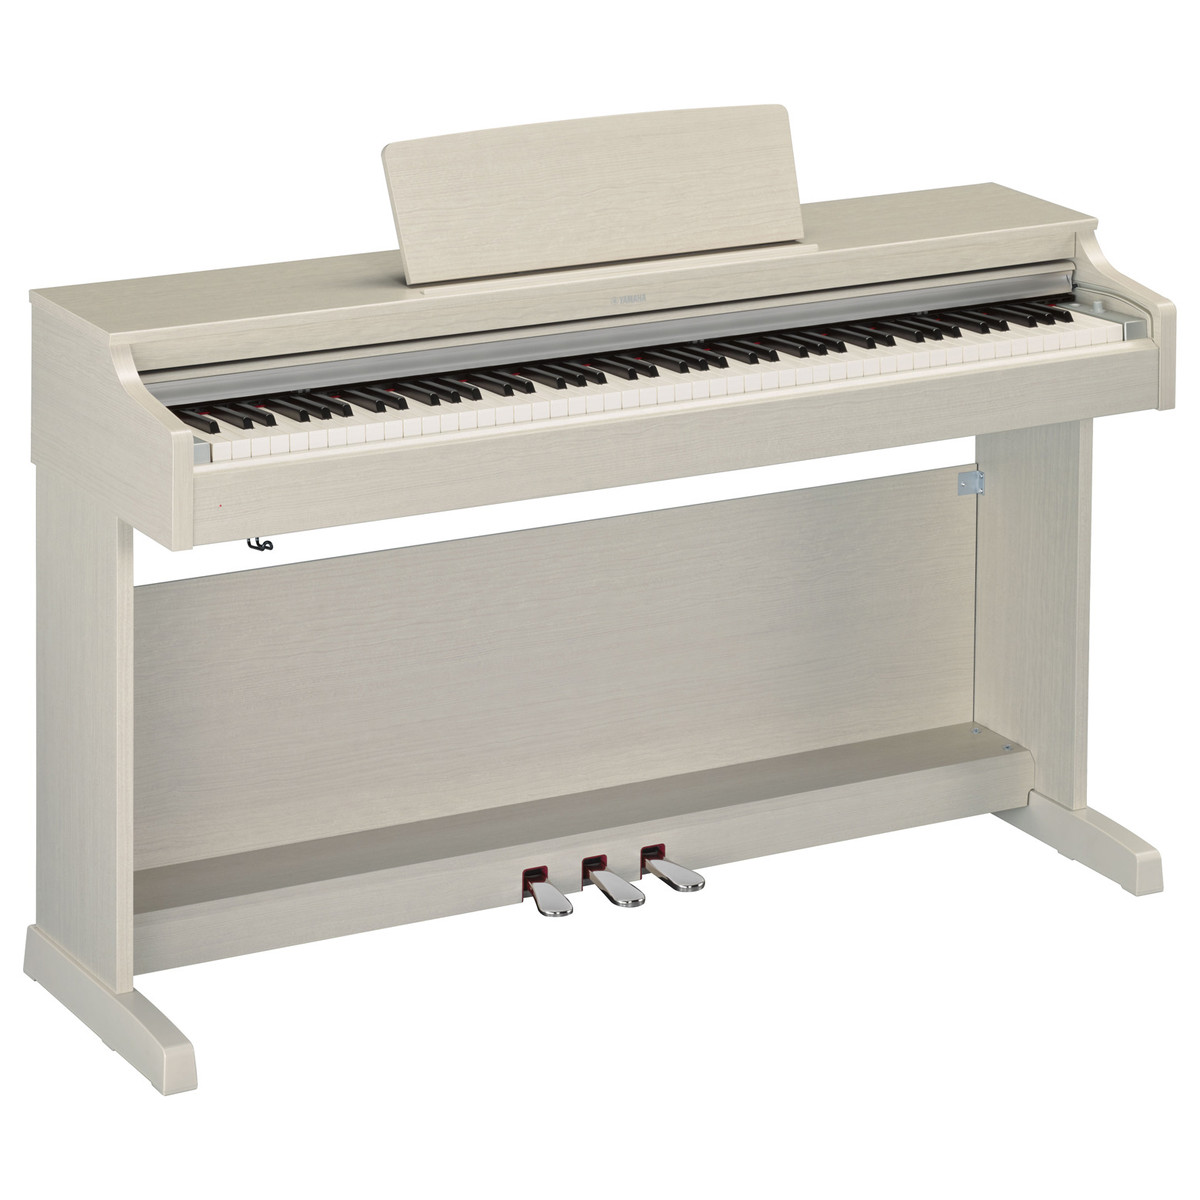 yamaha ydp 163 digital piano white ash at gear4music. Black Bedroom Furniture Sets. Home Design Ideas